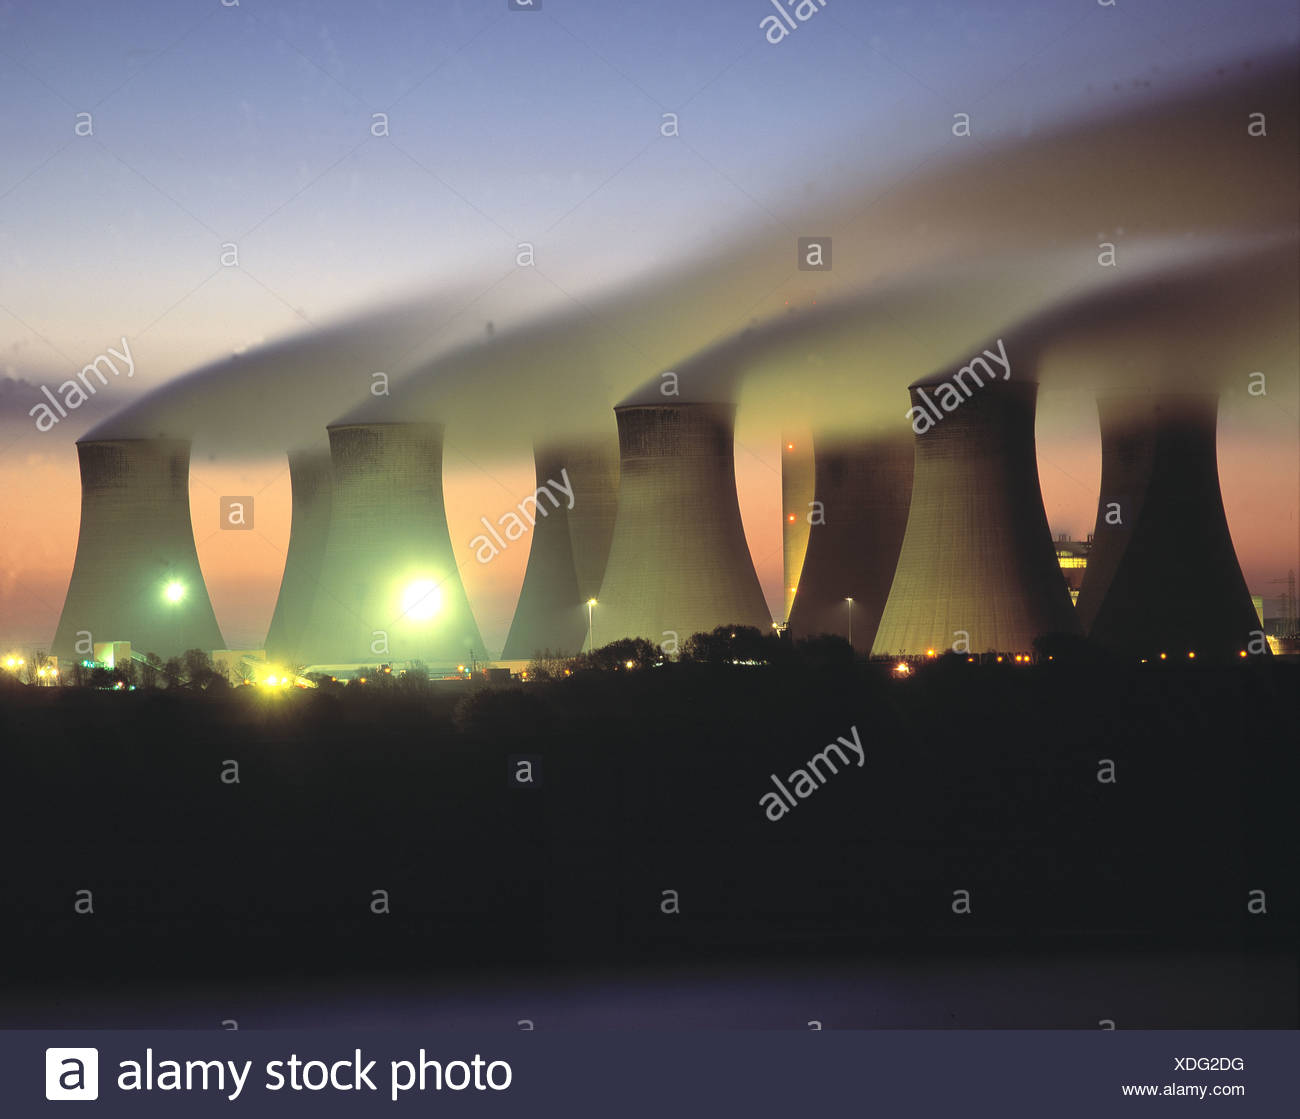 Cooling towers Cottam coal fired power station Notts UK - Stock Image